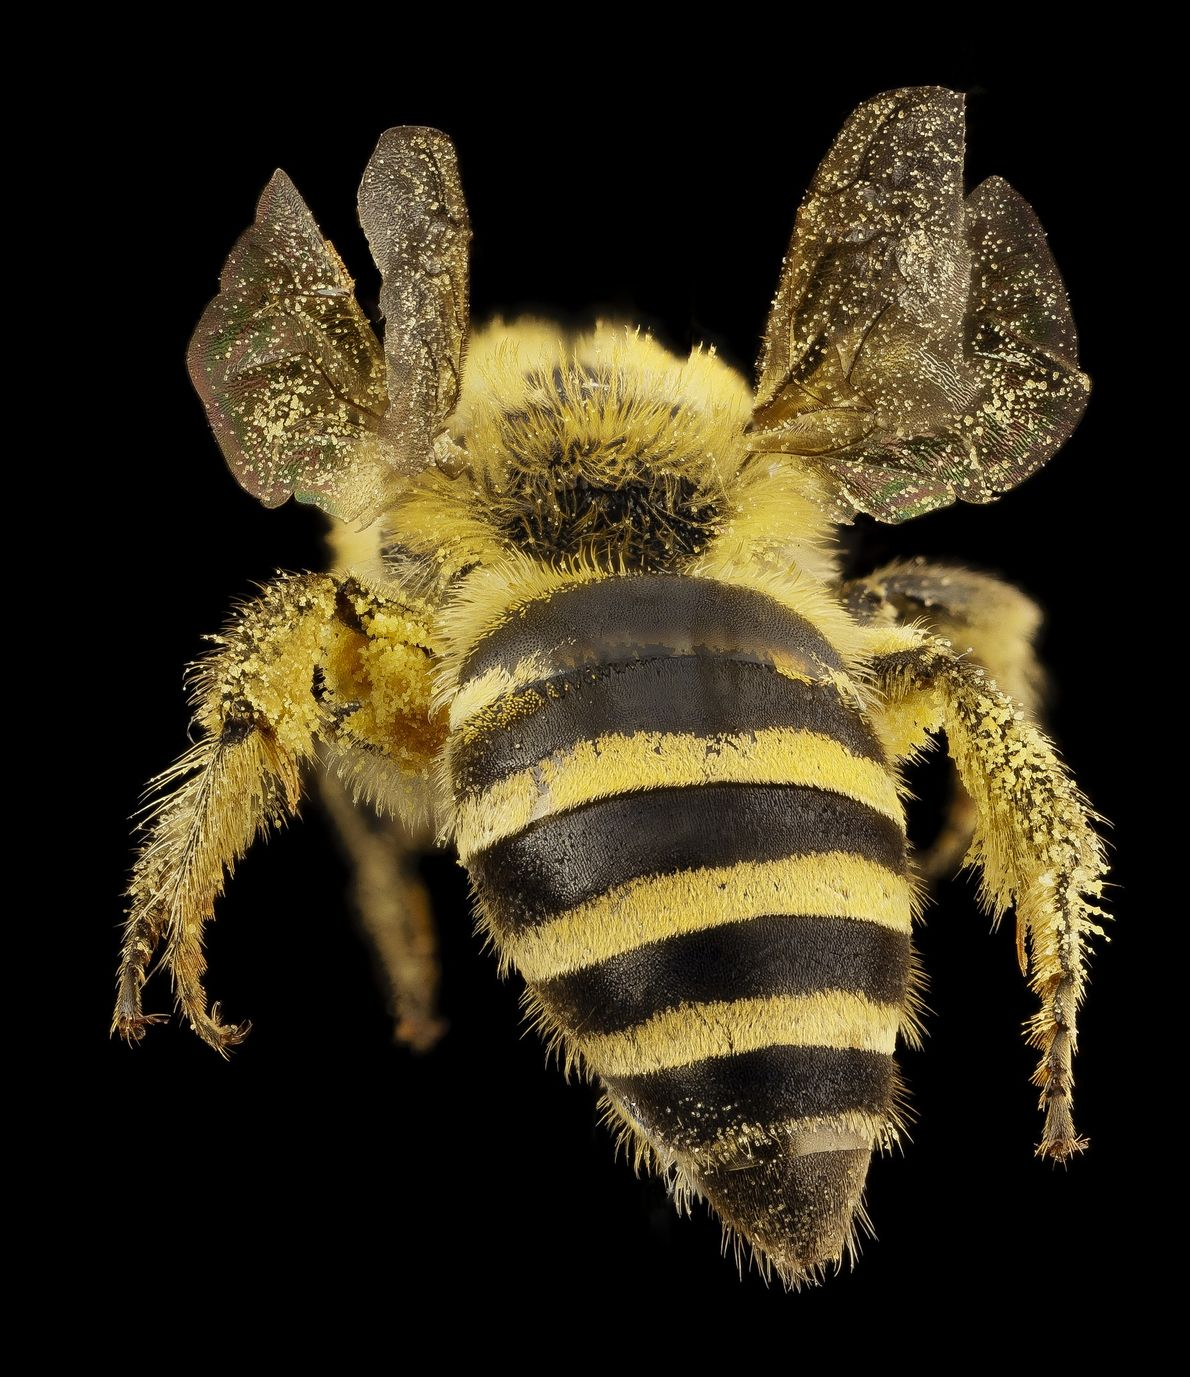 This species Colletes hederae is native to England and is a specialist on ivy.